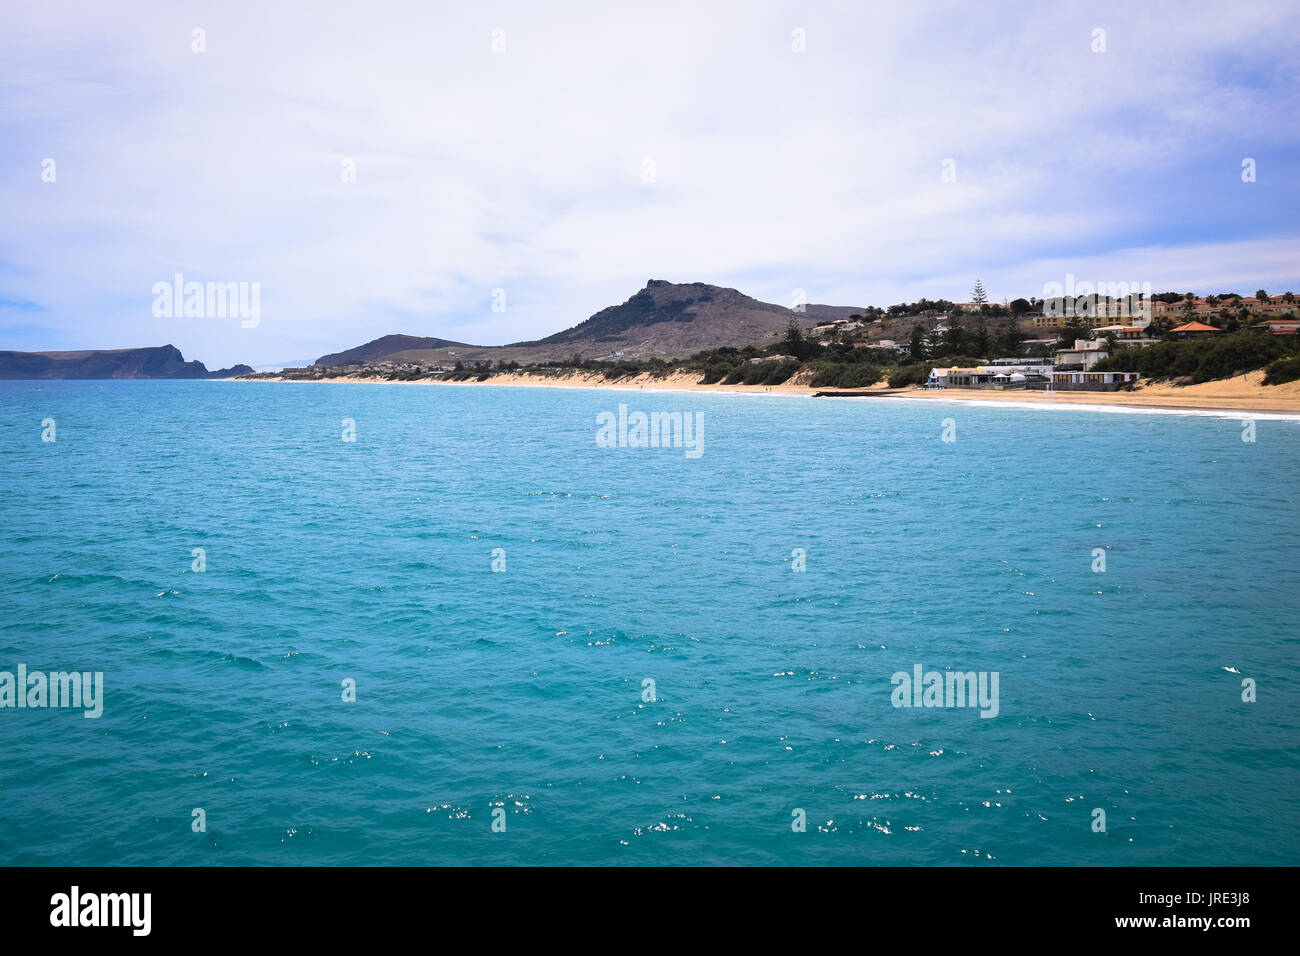 The beach of Porto Santo from the pier at Vila Baleira - Stock Image